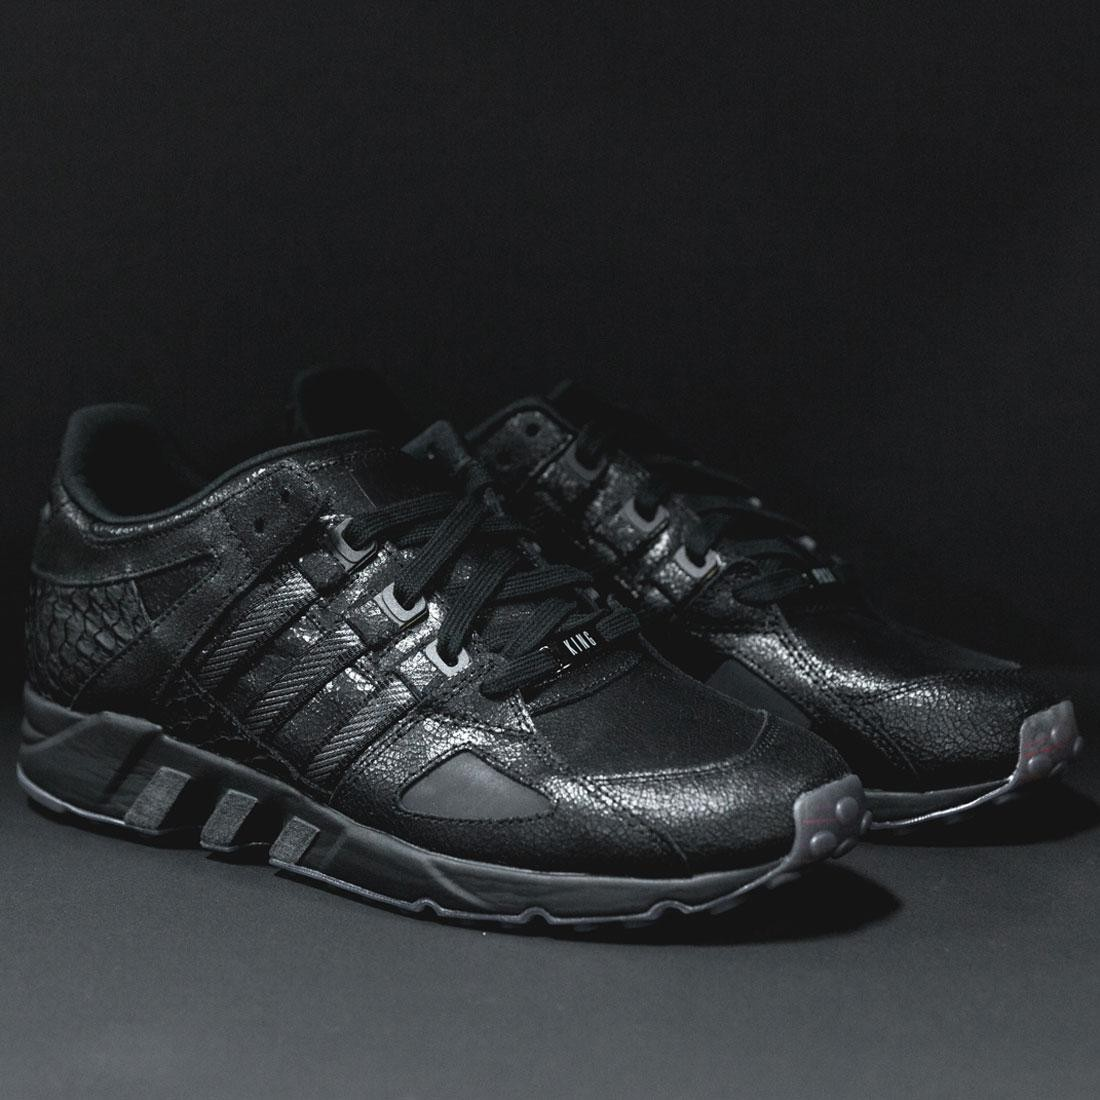 8d2e7ac10 Adidas x Pusha T Men EQT Running Guidance 93 - Black Market (black)